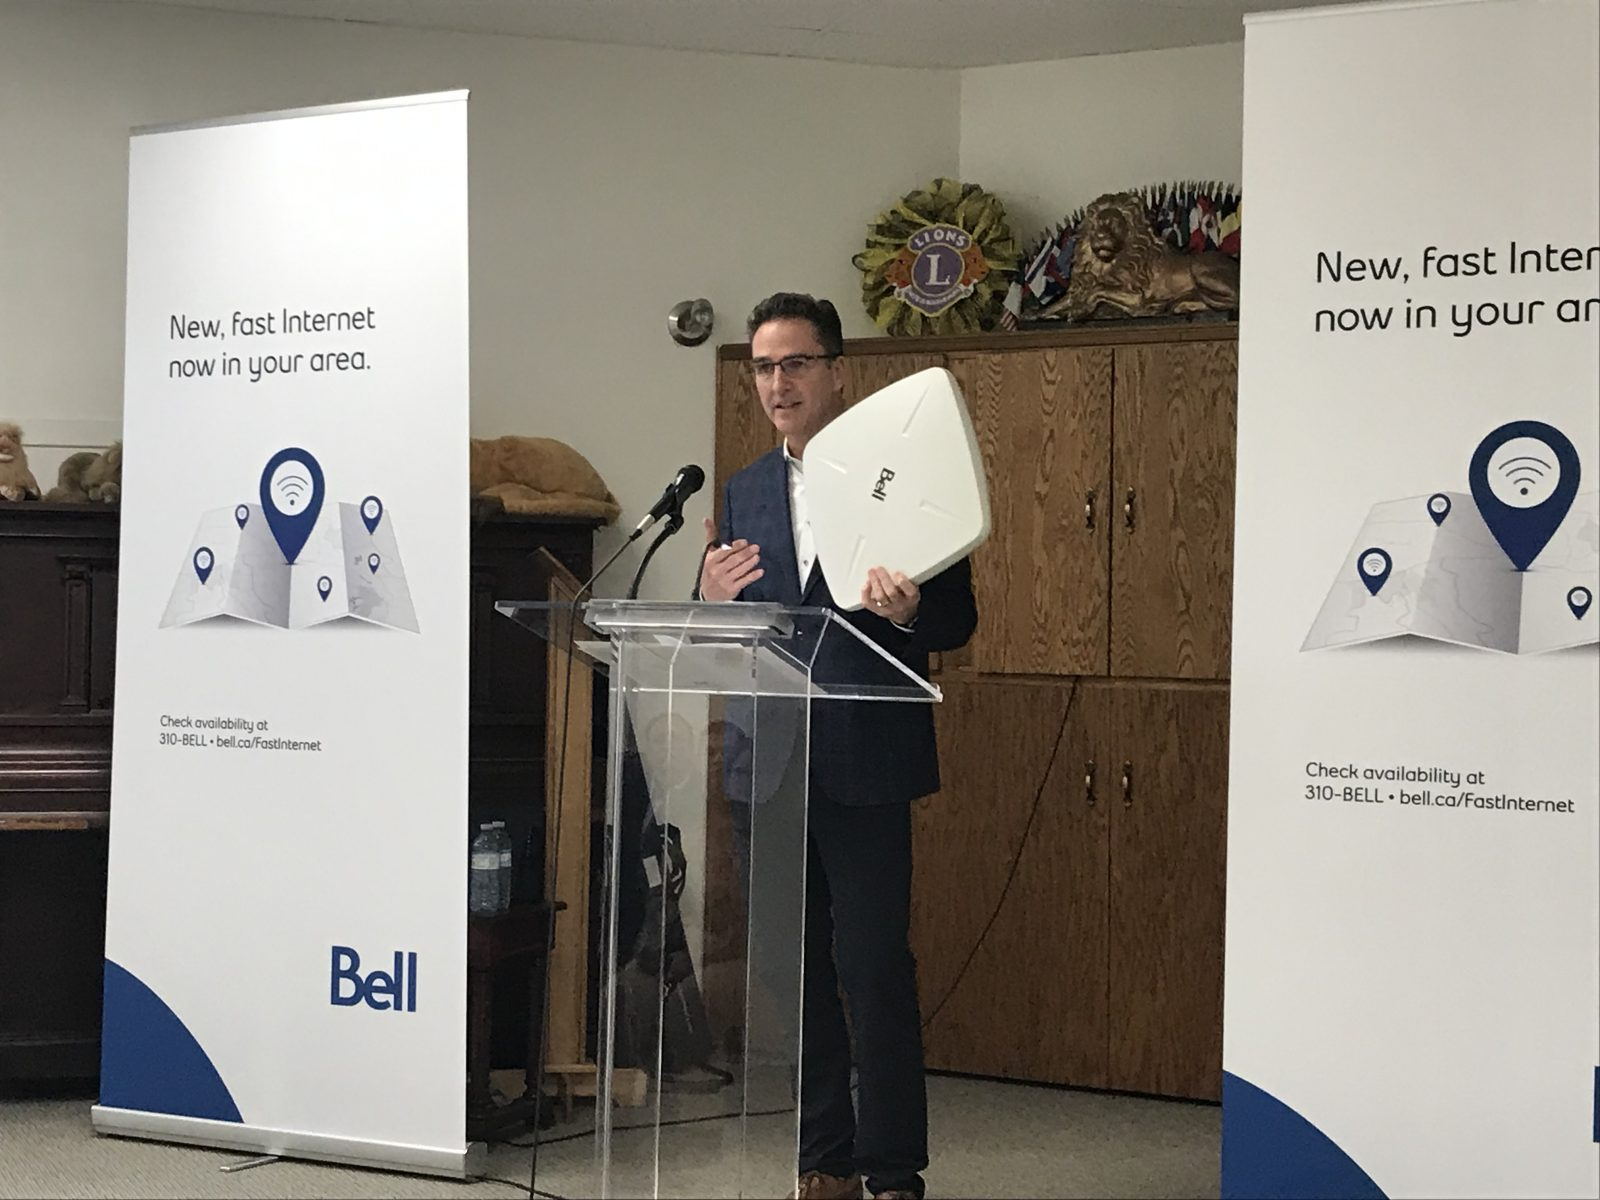 Wireless internet expands in rural areas | Quinte News